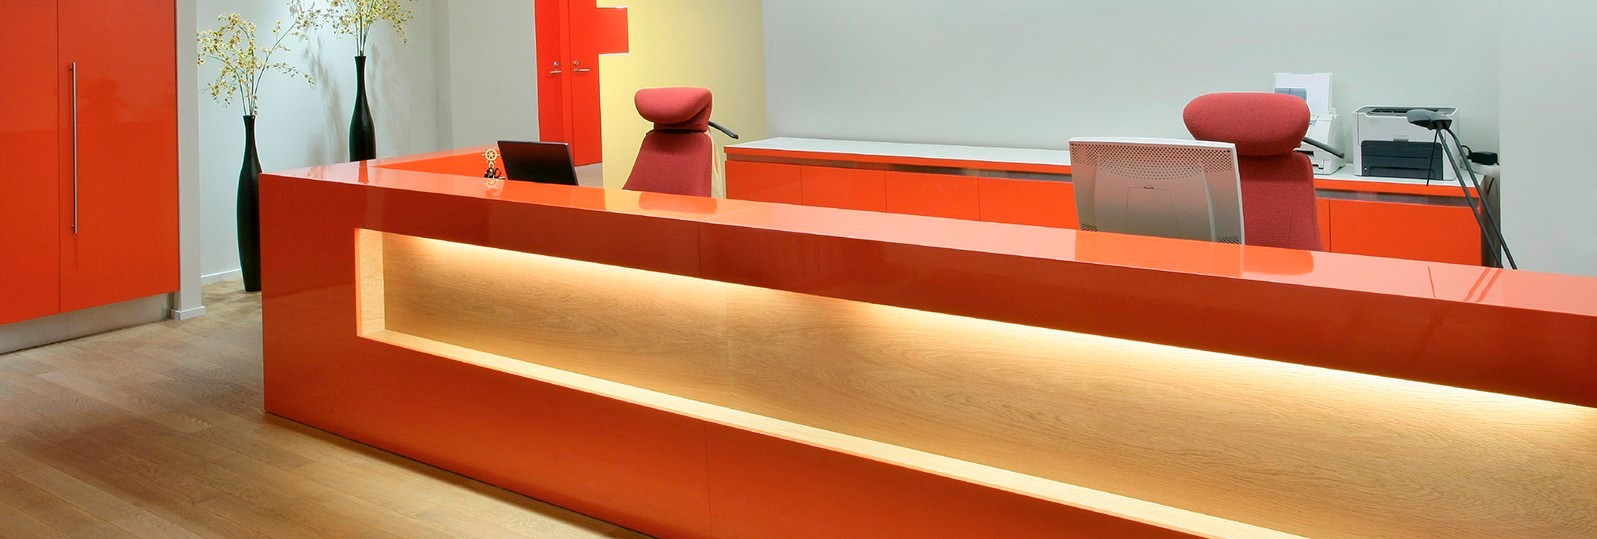 reception corian design